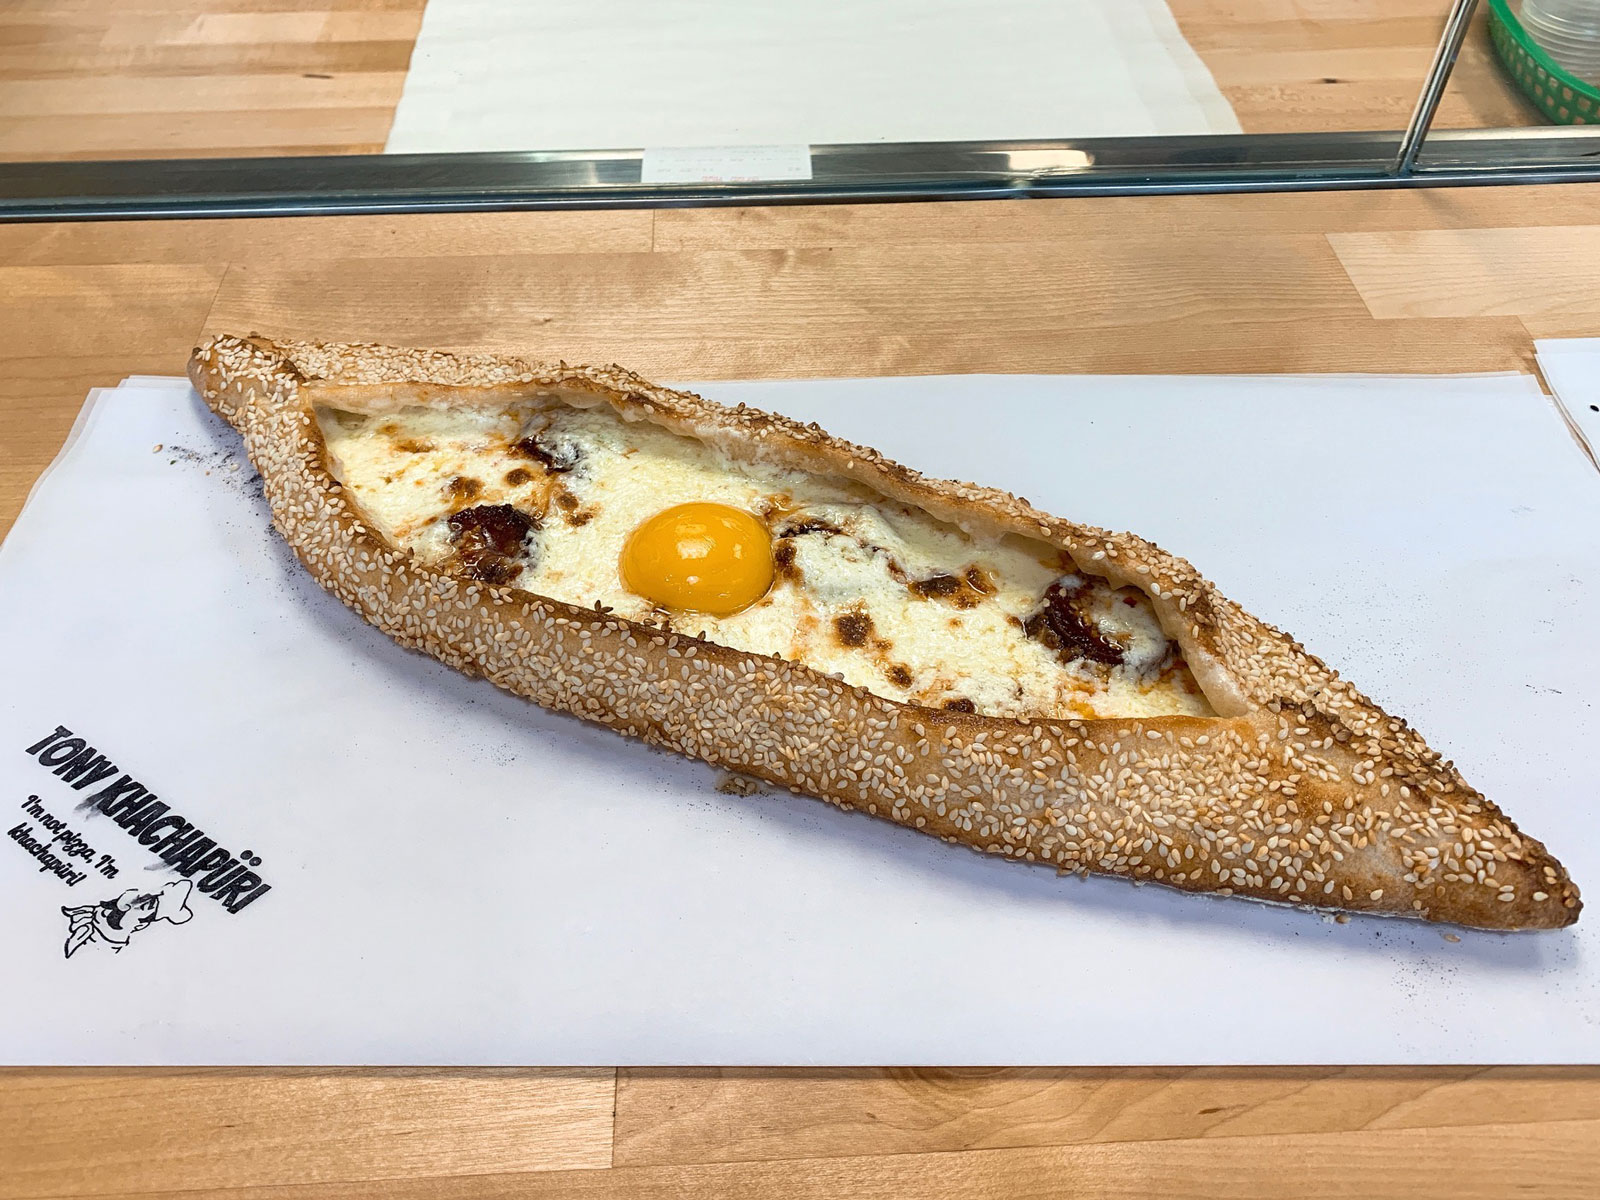 This Khachapuri Shop Inside a Banh Mi Restaurant Is the Pinnacle of Pop-Up Culture